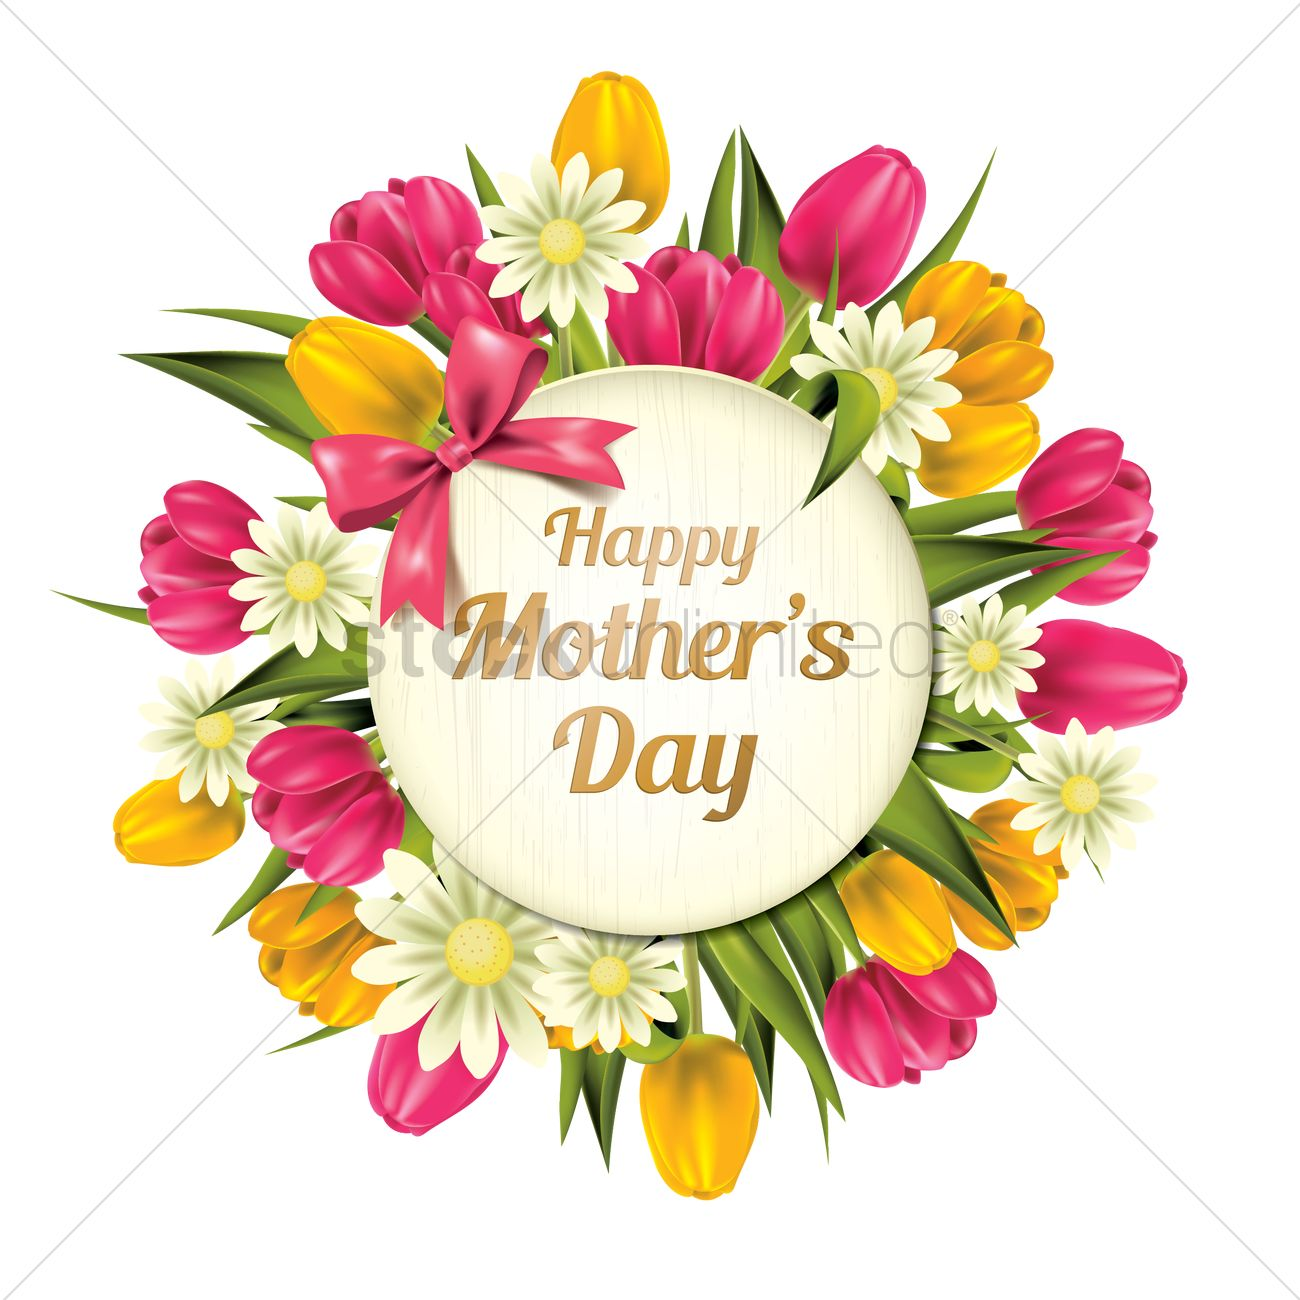 1300x1300 Happy Mothers Day Vector Image